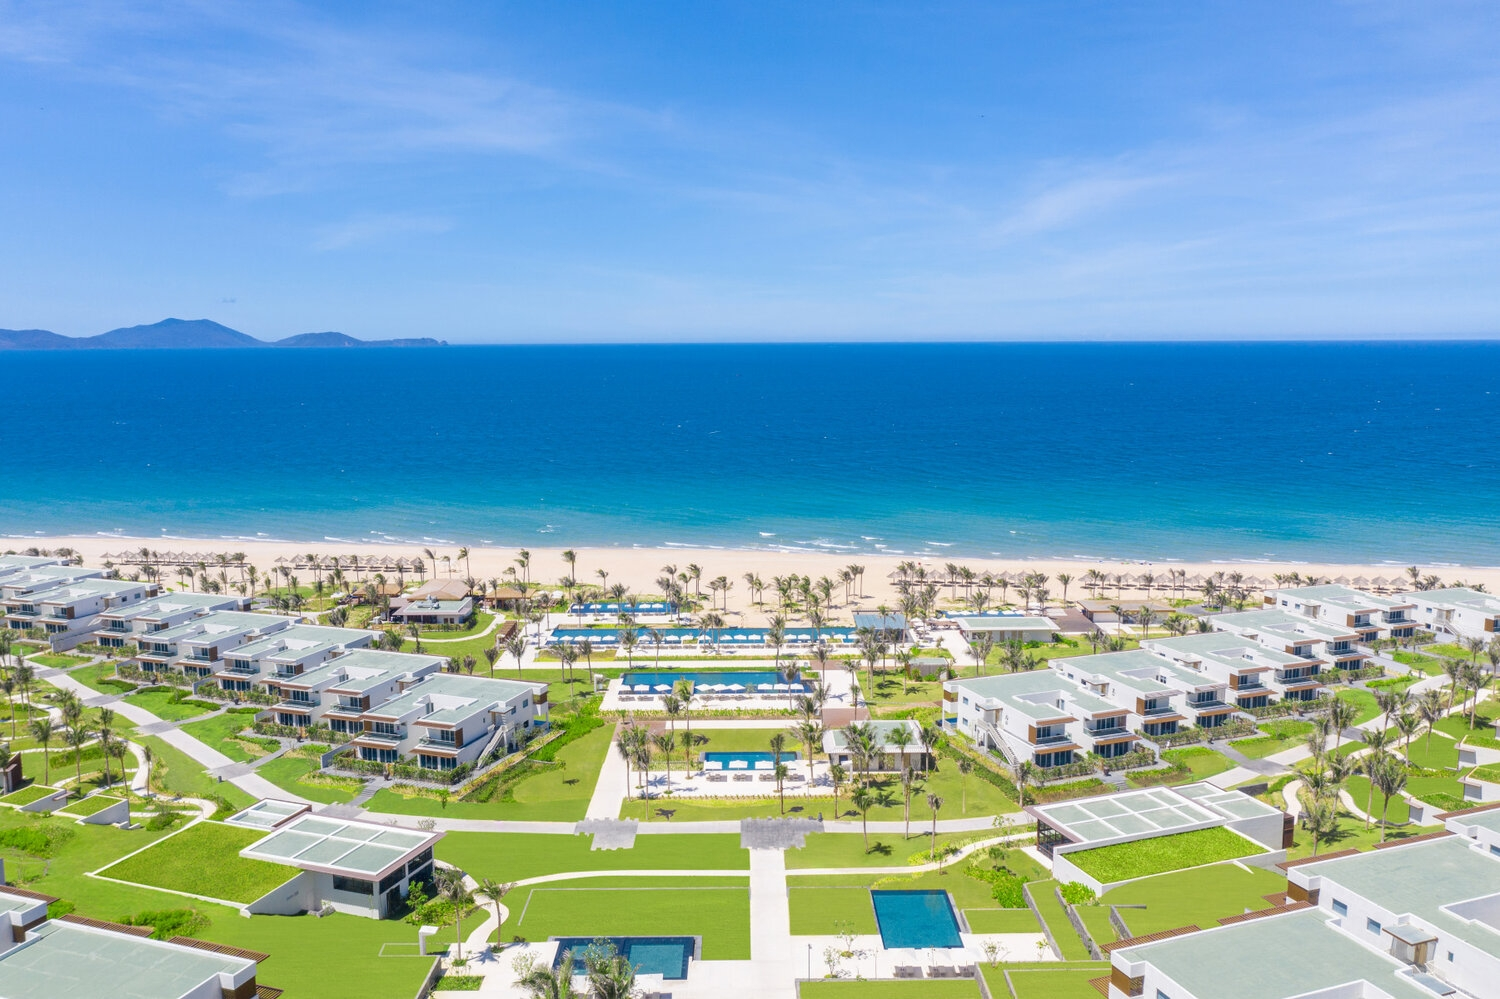 lessons from managing a new resort amid the pandemic